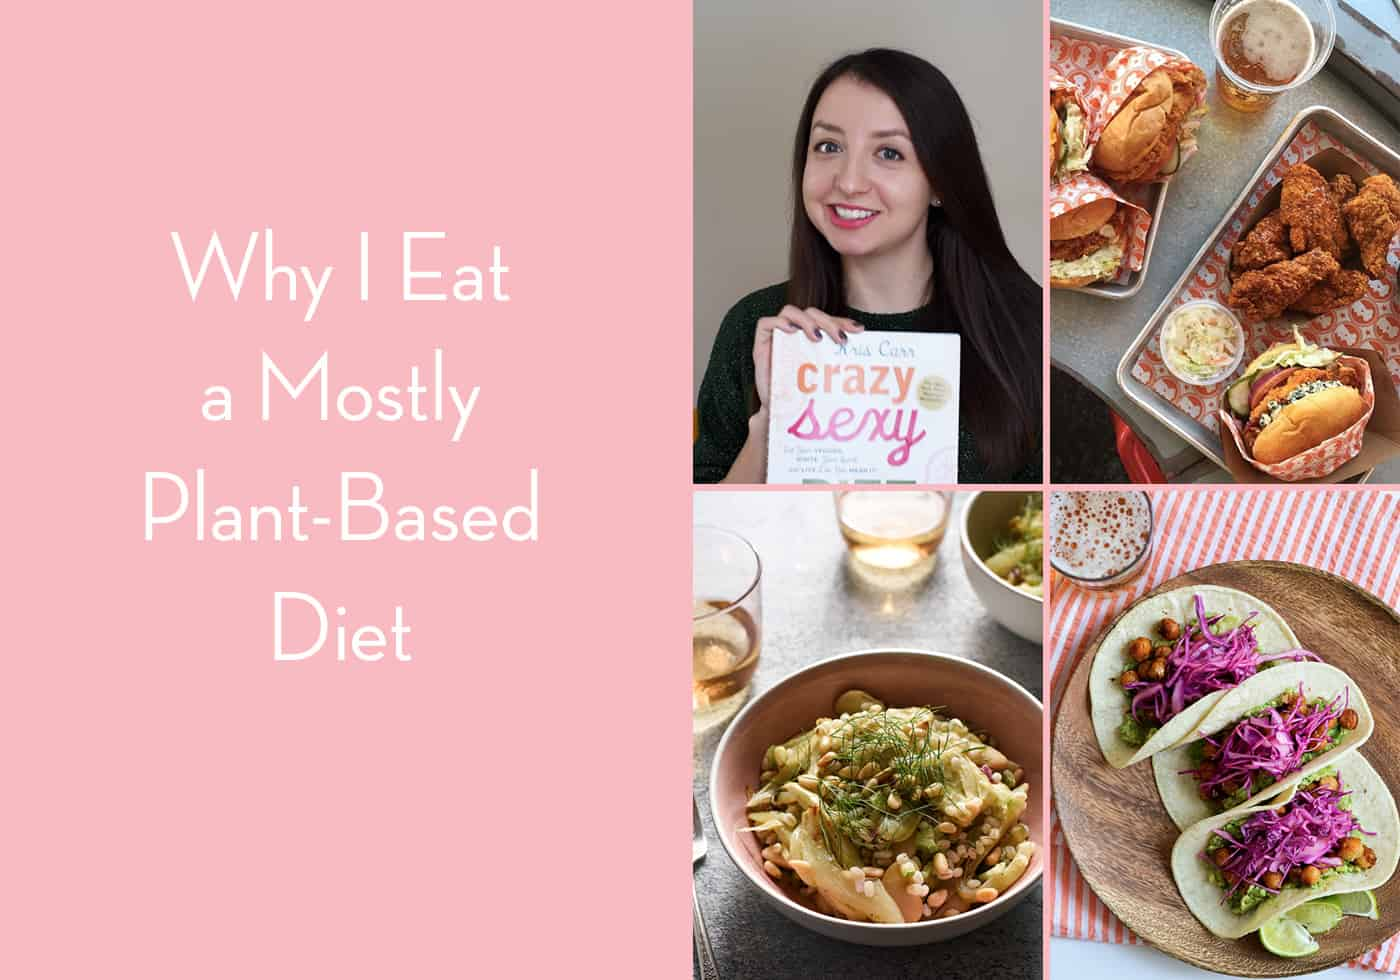 Video: Why I Eat a Mostly Plant-Based Whole Foods Diet | The New Baguette